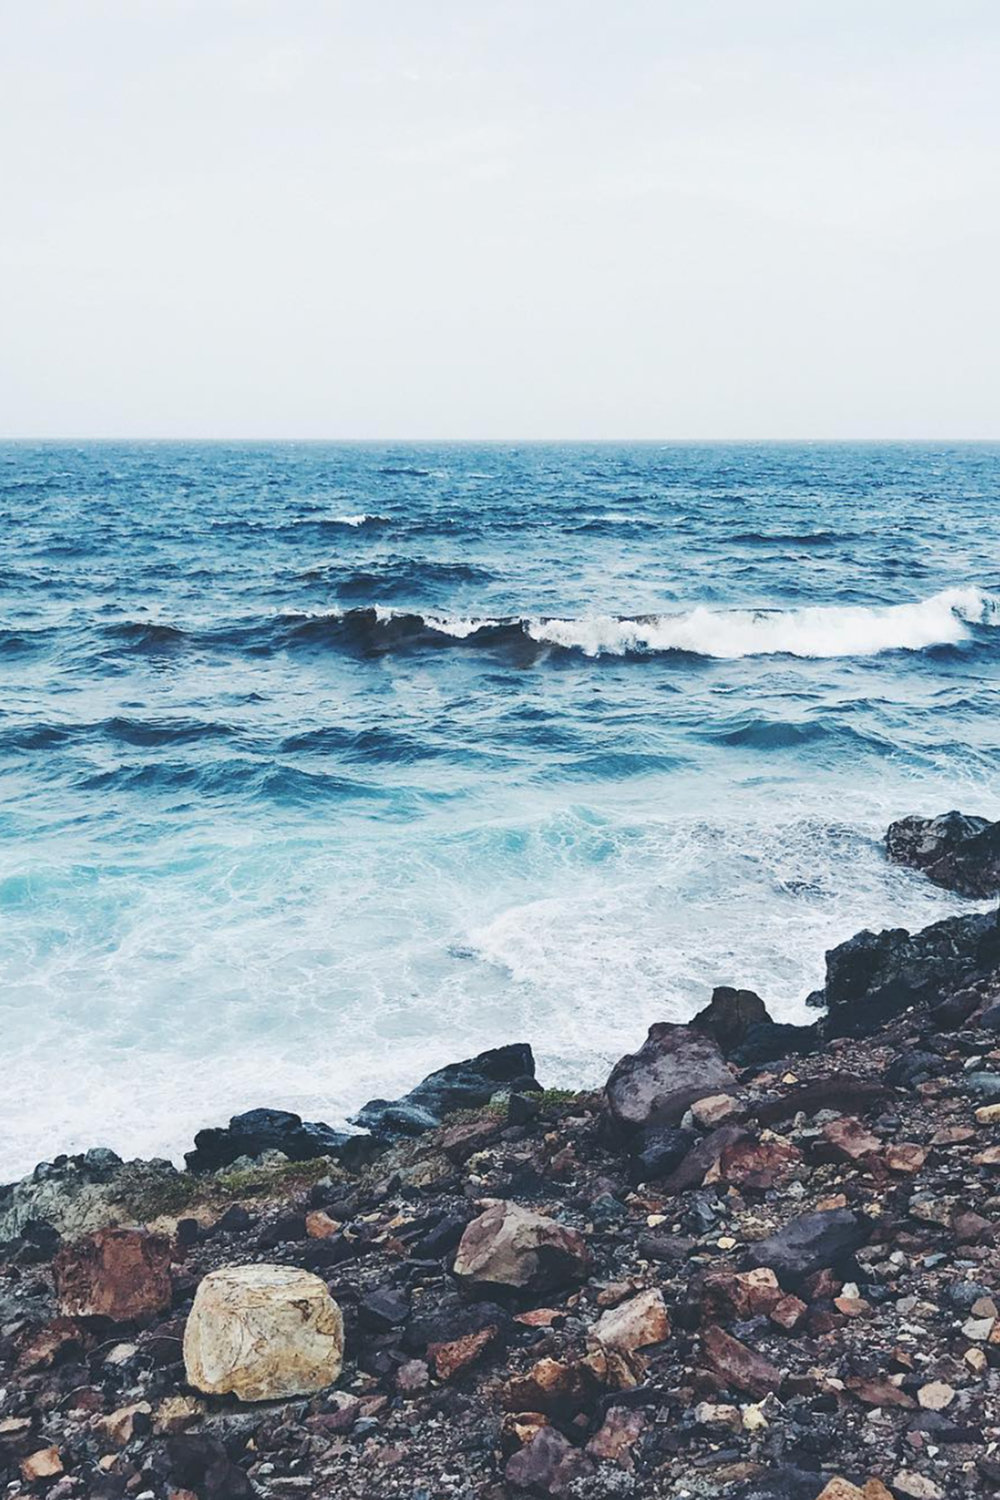 Ocean Waves / Summer Sea / Tropical Nature Photography / Wanderlust Travel / Kelly Fiance Creative